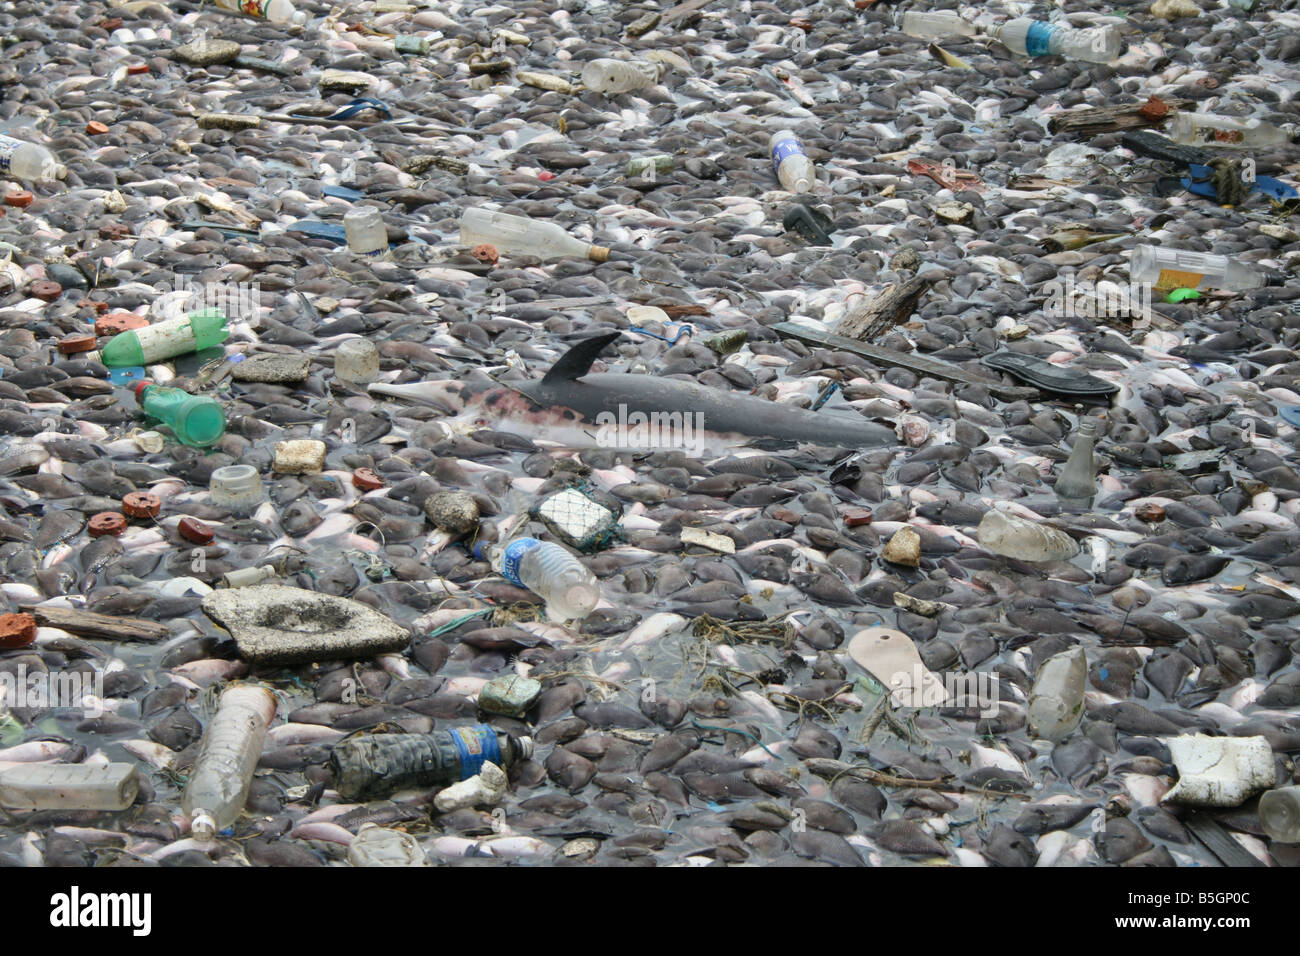 Fishes dying due to sea pllution and dumping of chemical waste by factories into the ocean - Stock Image